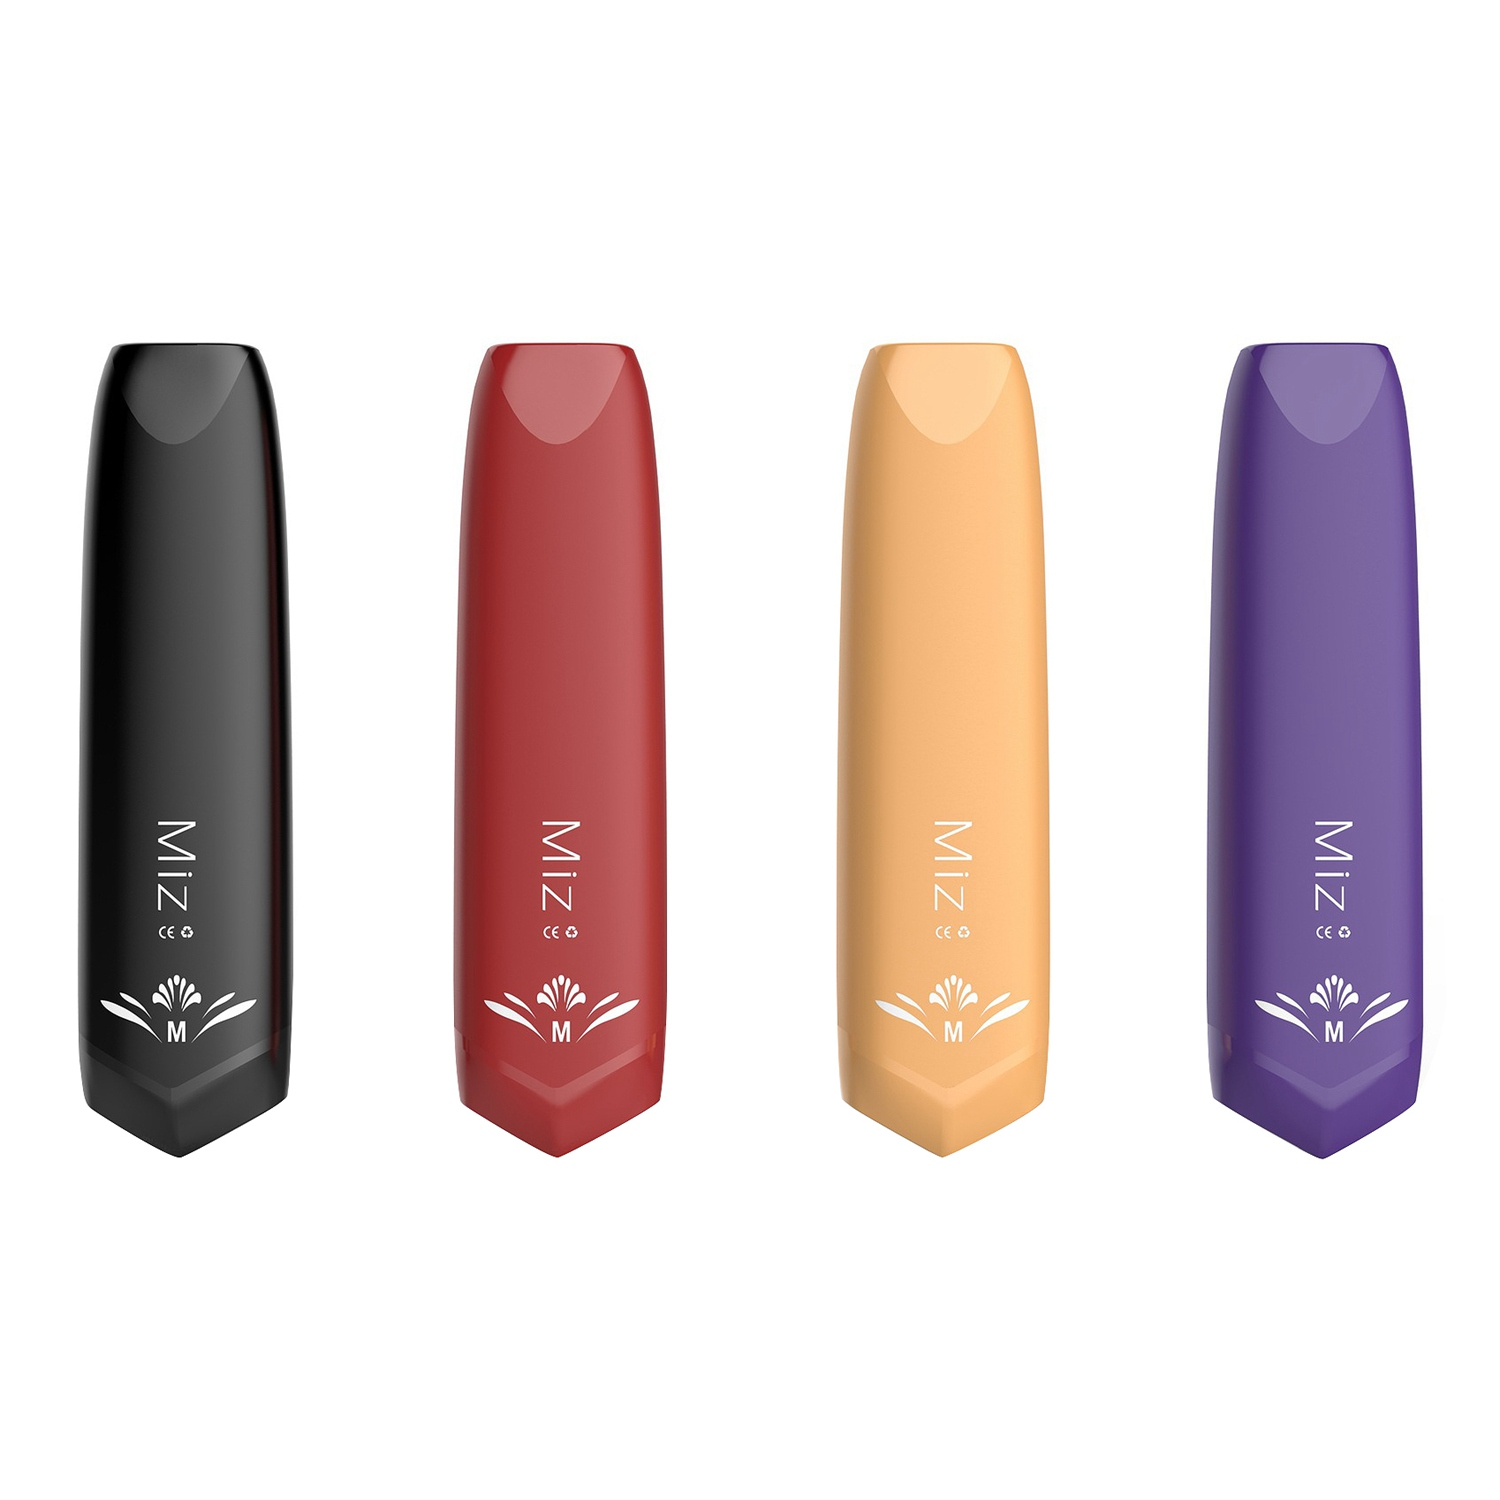 3Pcs Hugsvape Fmcc Miz Disposable Electronic Cigarette 300 Mouth Mini Vape Pen All In One 240Mah E-Cigarette Pod Vape